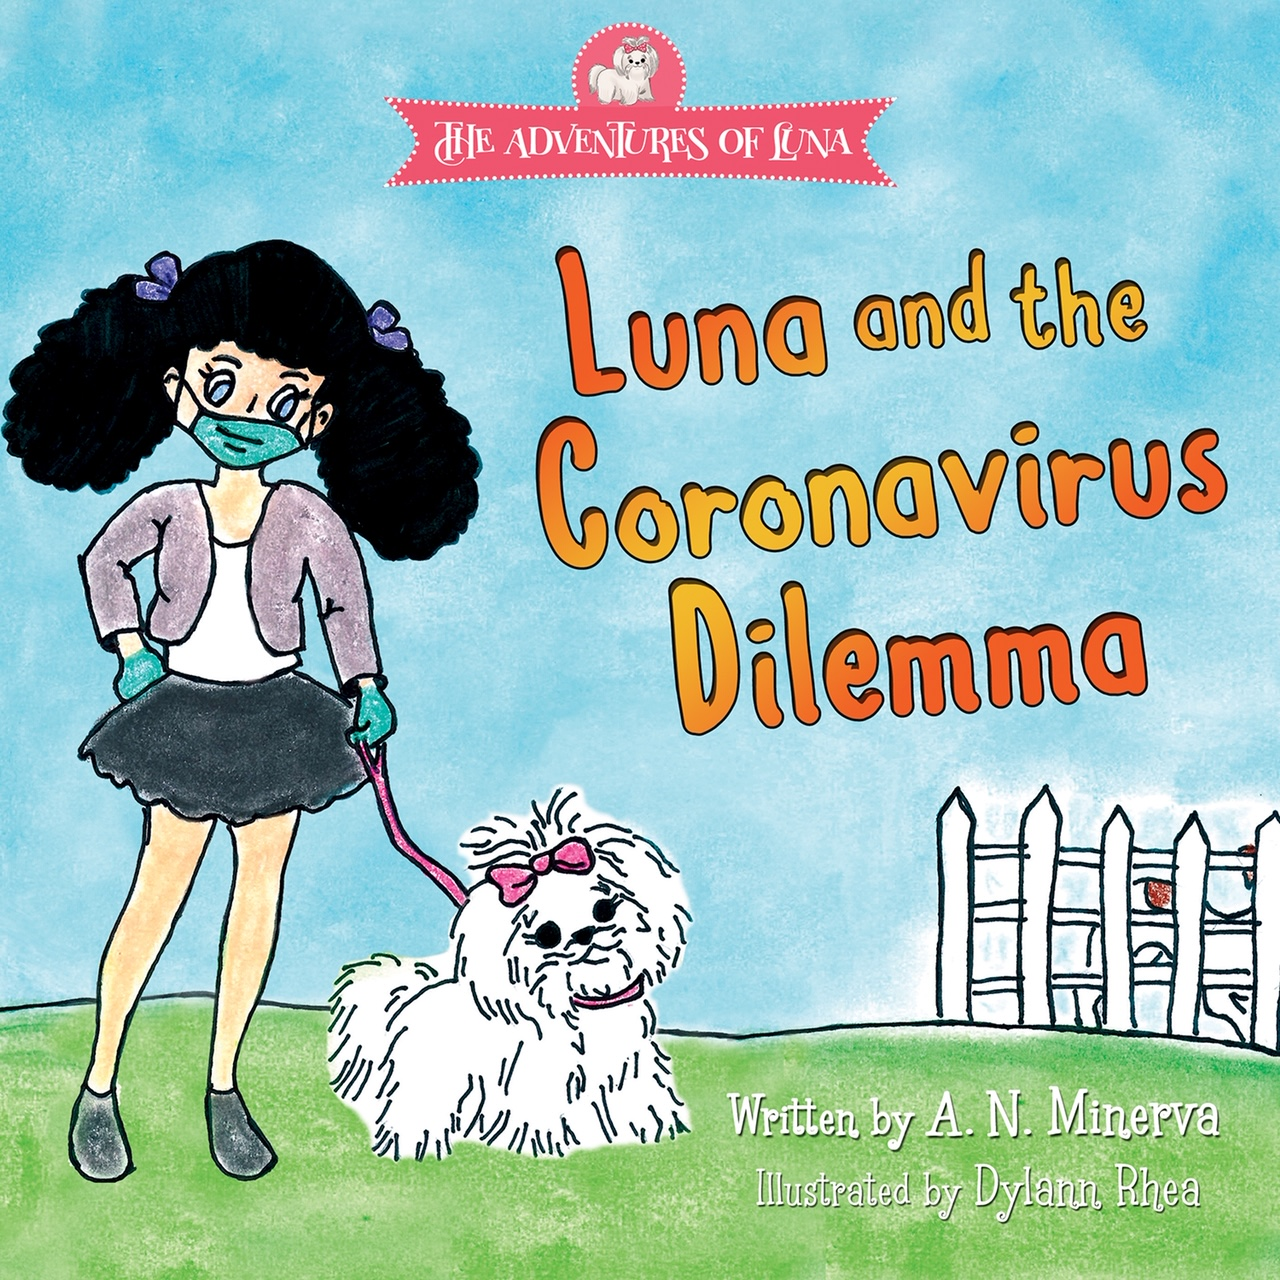 Luna and the Coronavirus Dilemma